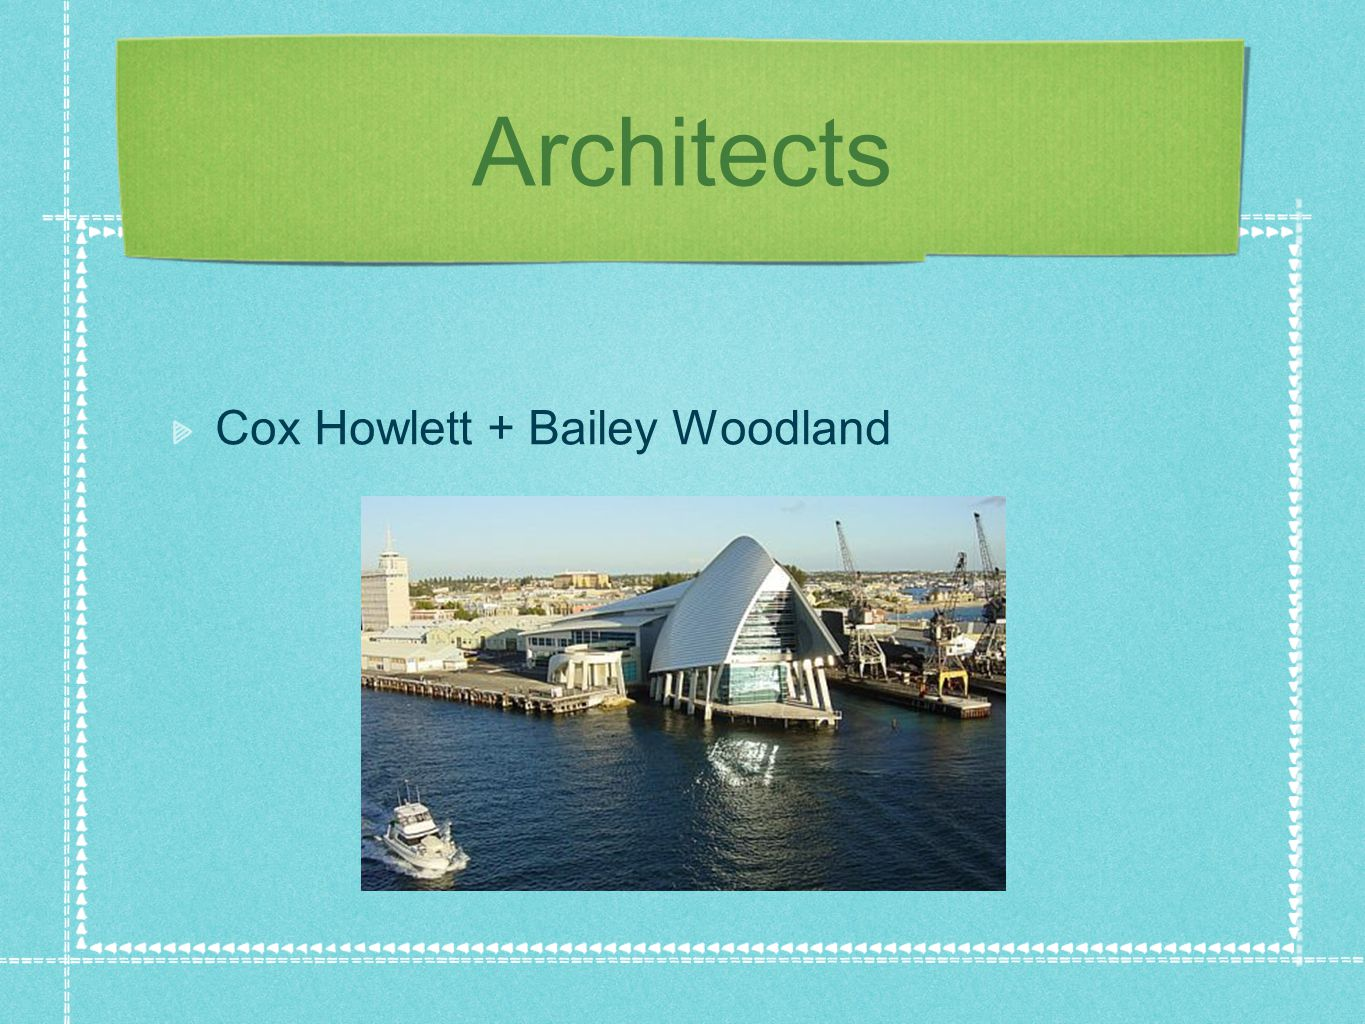 Architects Cox Howlett + Bailey Woodland